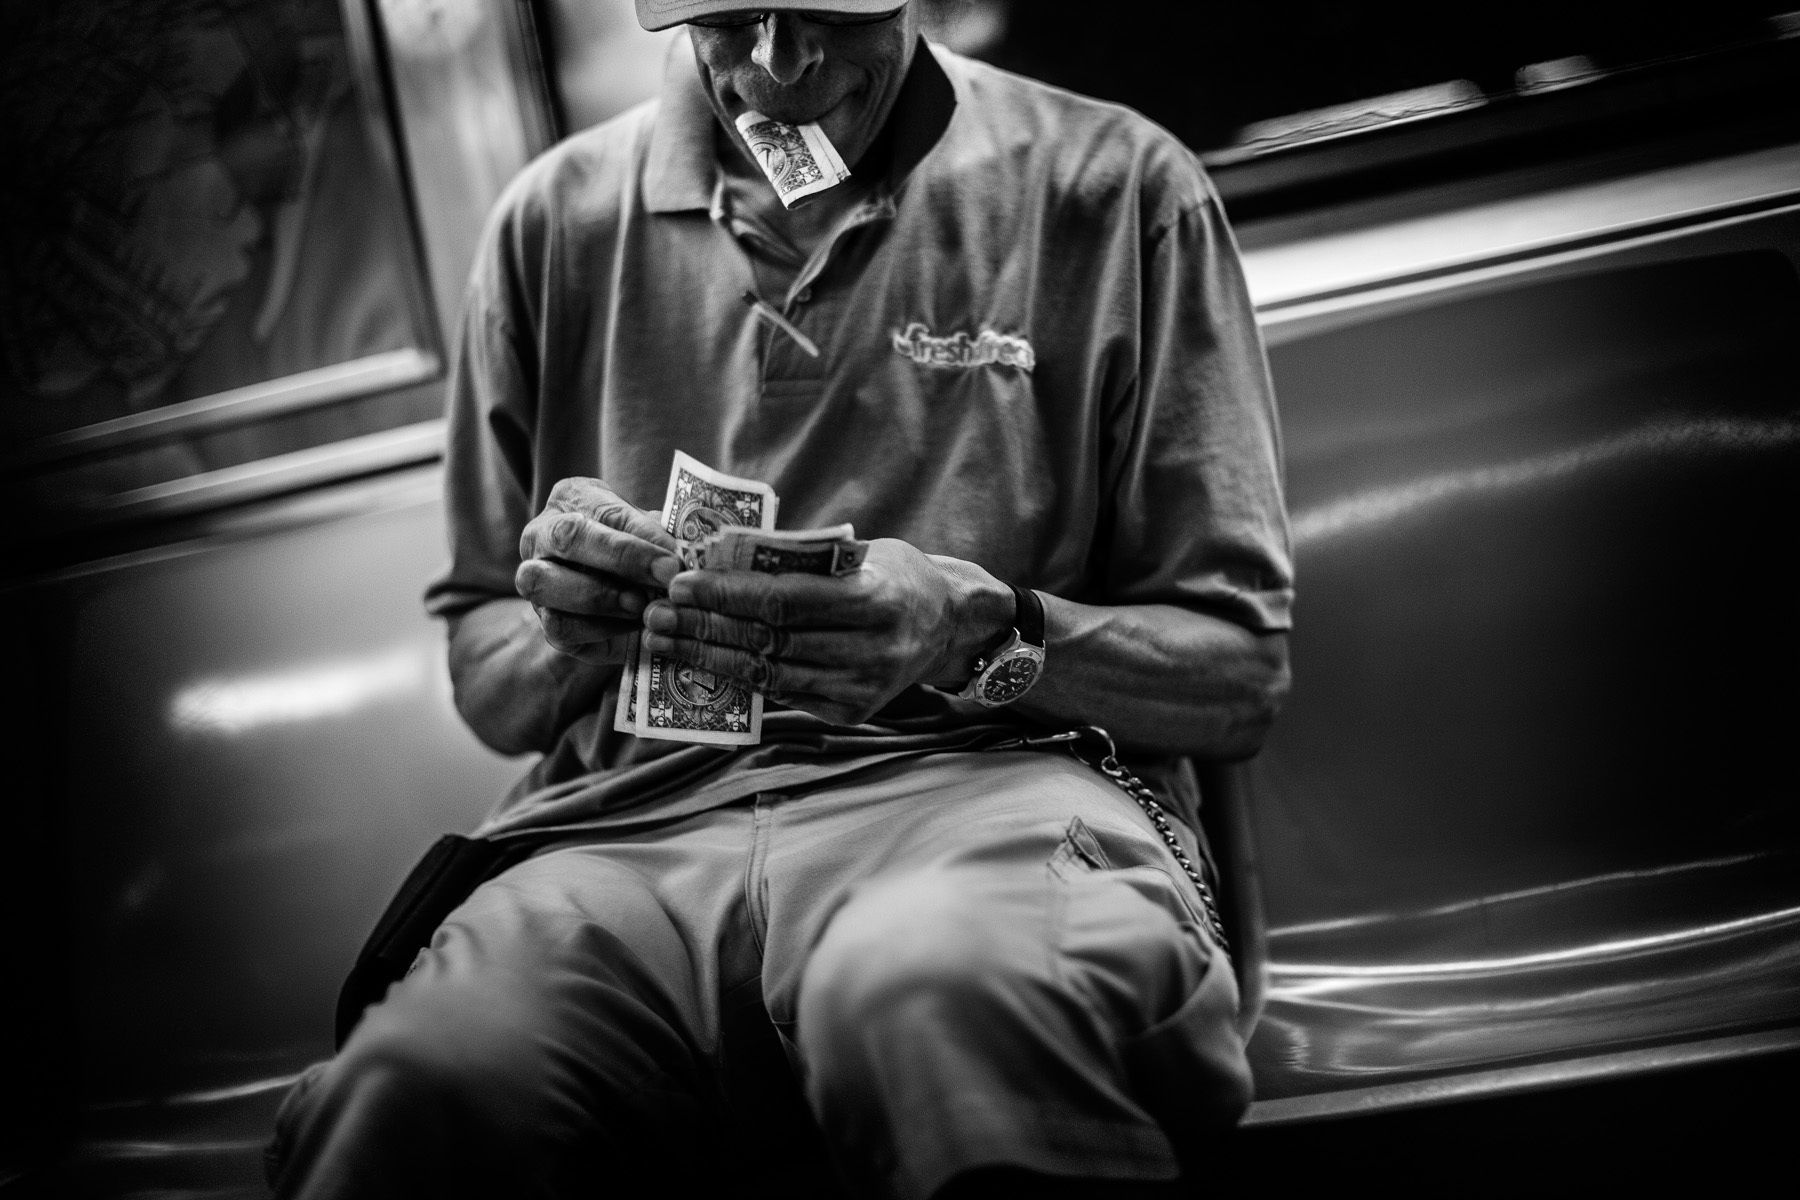 Subway, New York, NY, 2012